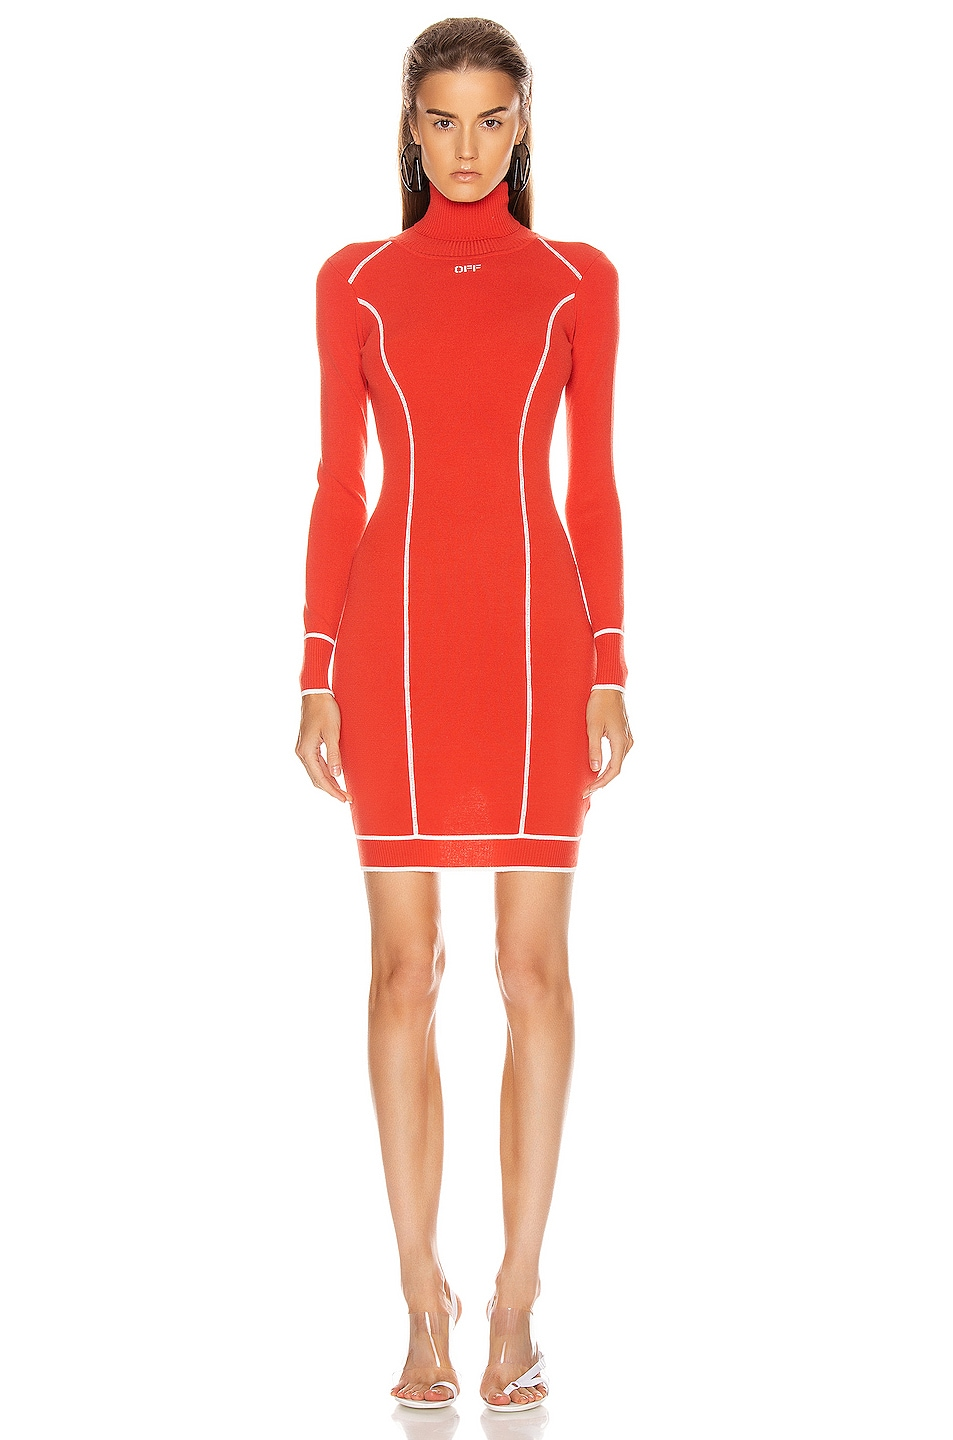 Image 1 of OFF-WHITE Knit Athletic Turtleneck Dress in Red & White